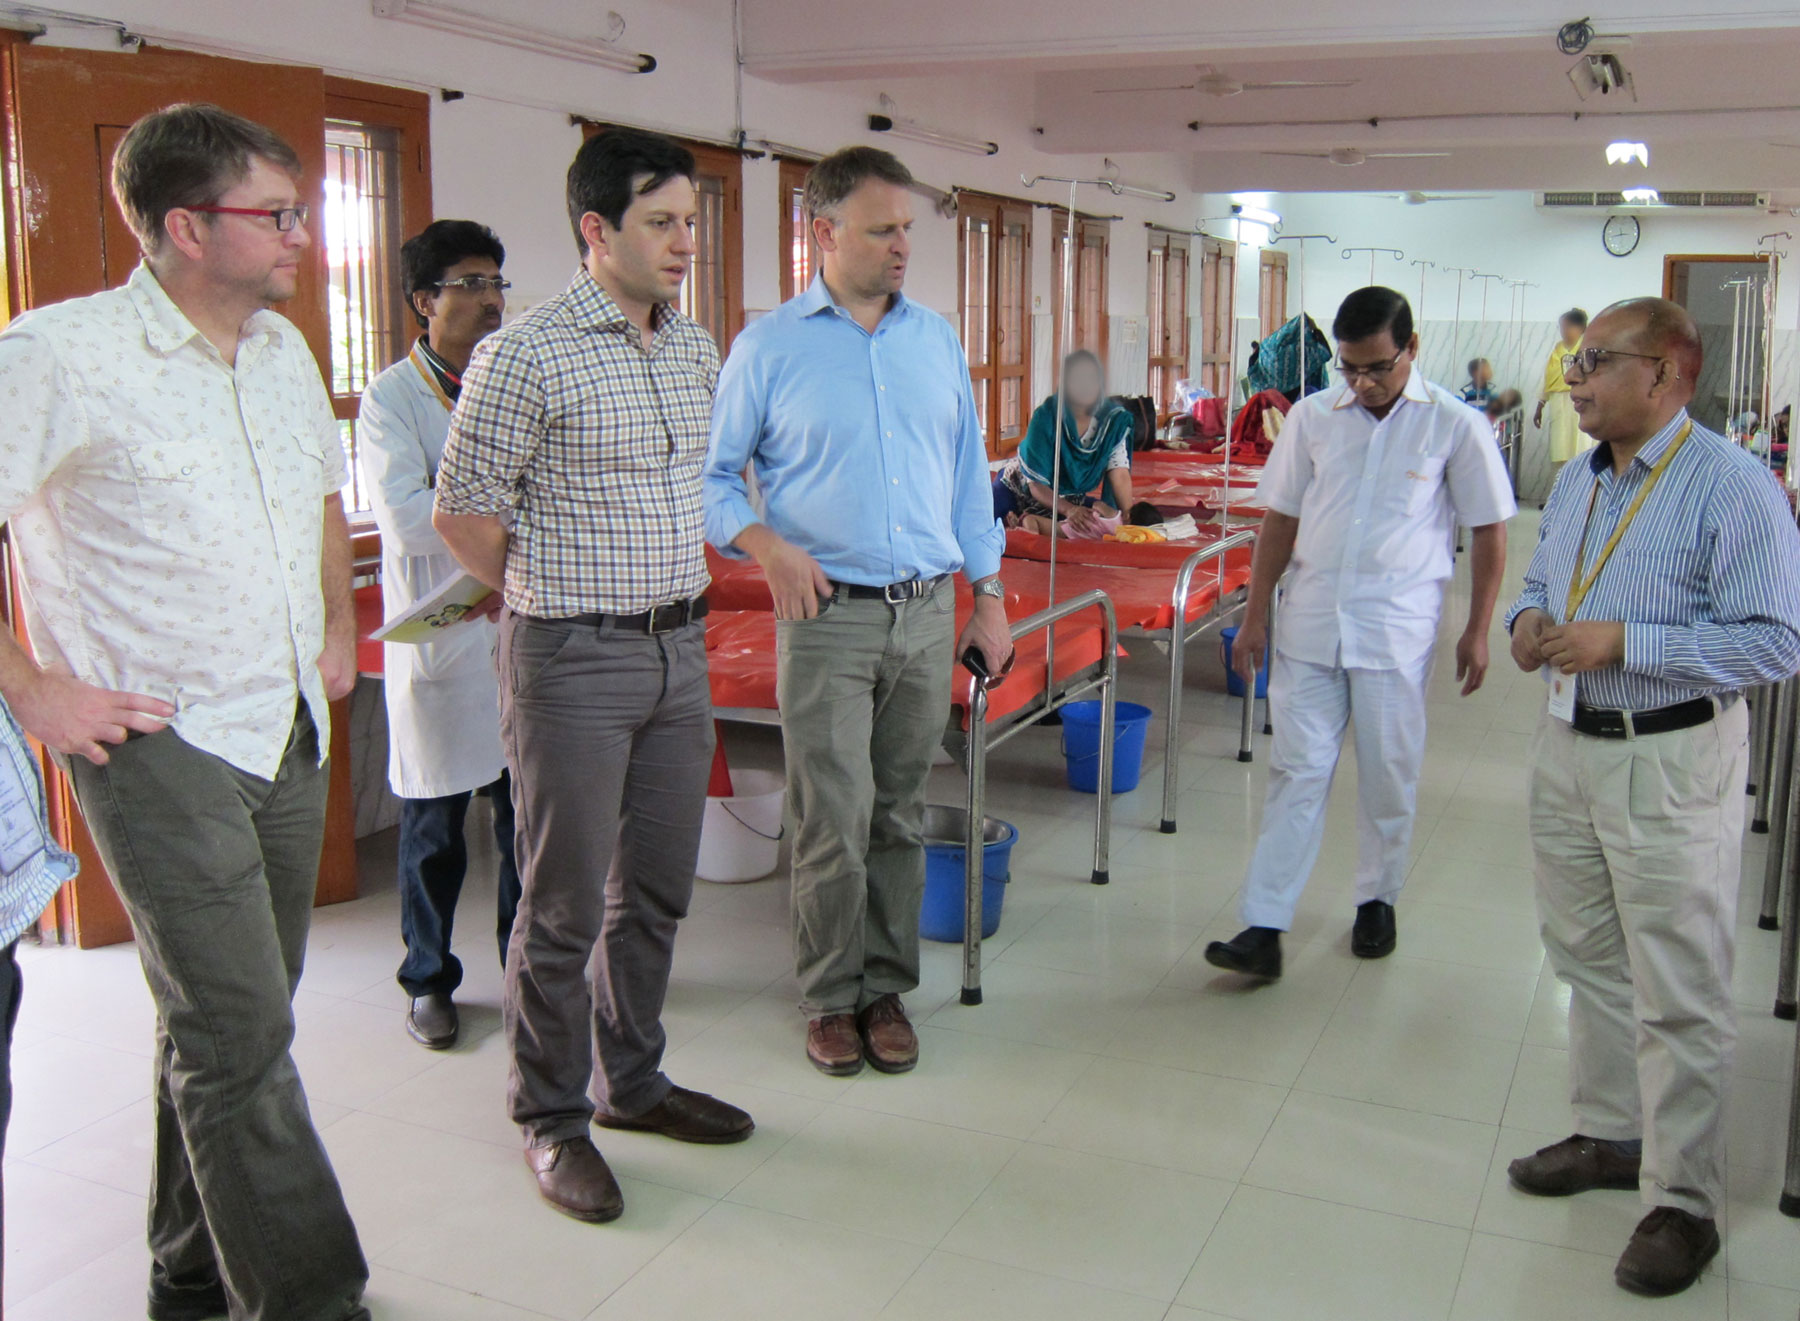 Barry Lutz and UW TB delegation in Bangladesh hospital